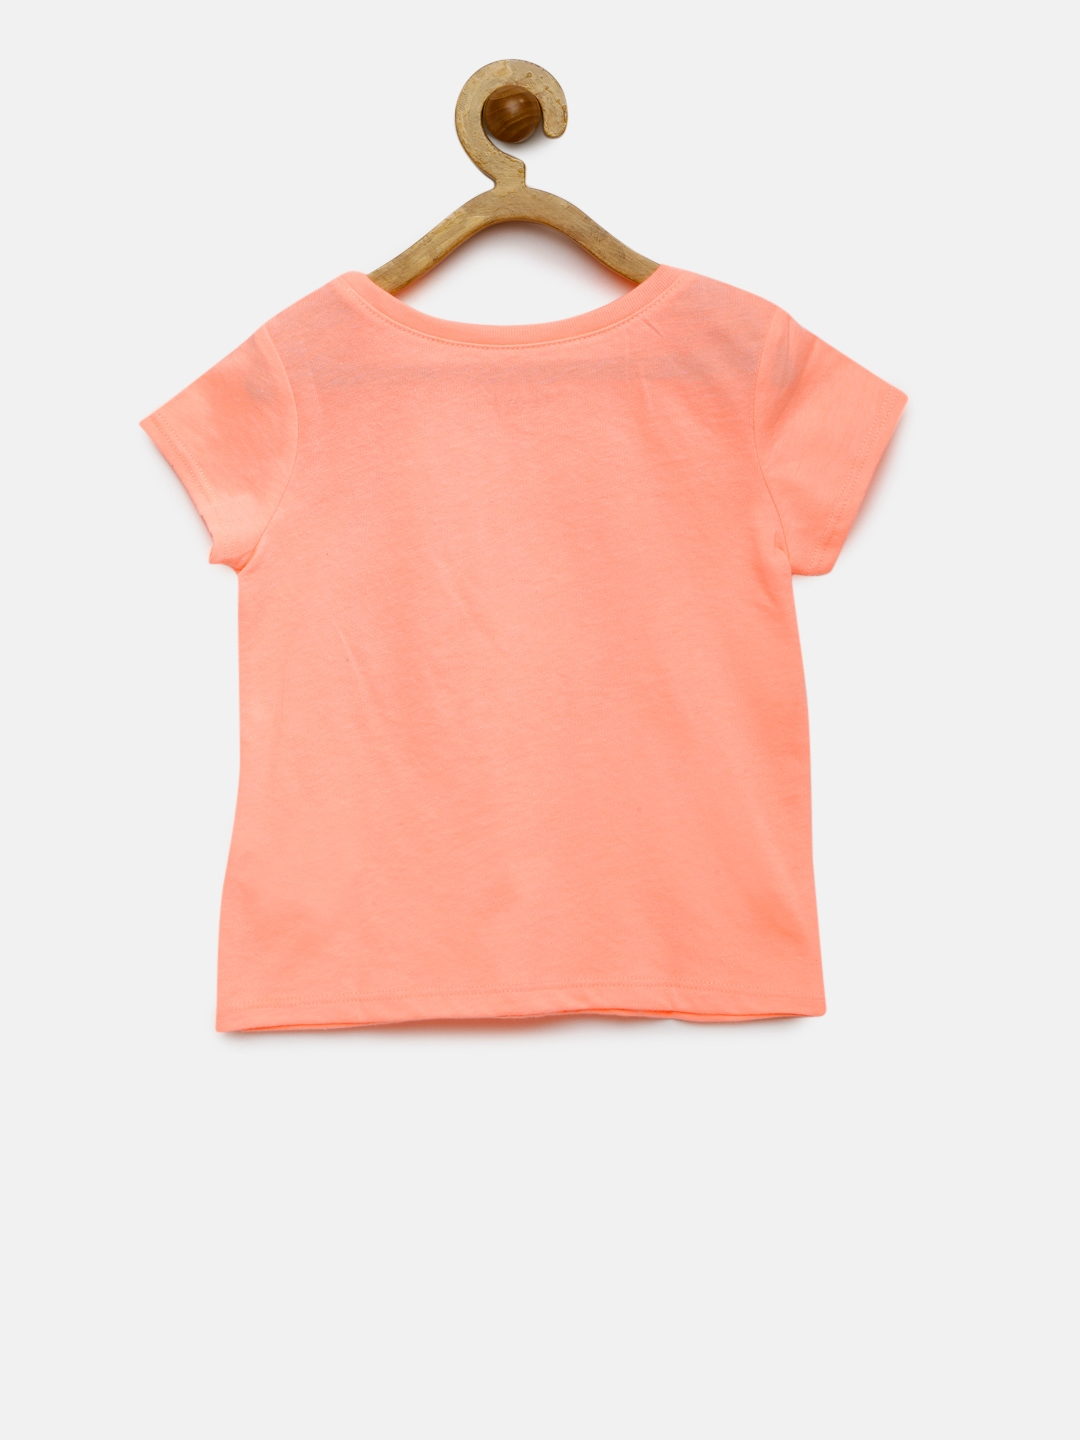 746f2f09b Buy The Childrens Place Girls Peach Coloured Printed Round Neck T ...